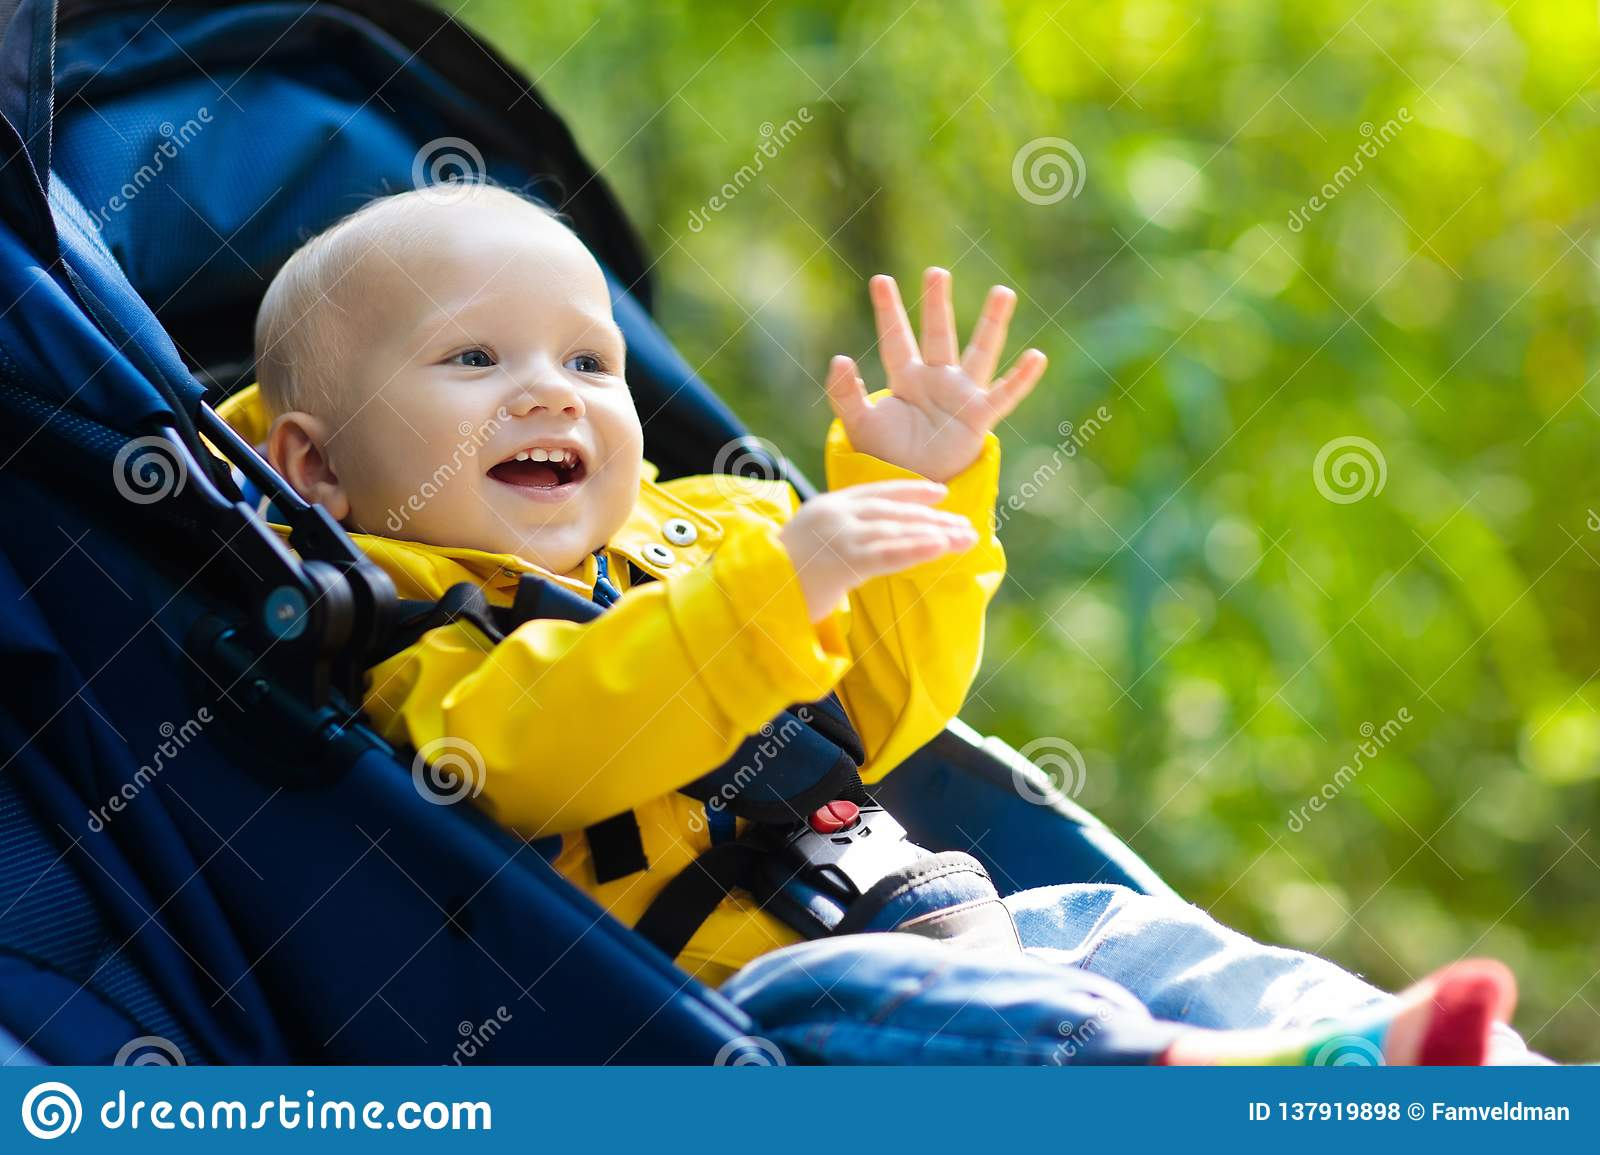 397d5a78ead1 Baby Boy In Stroller In Autumn Park Stock Photo - Image of blanket ...